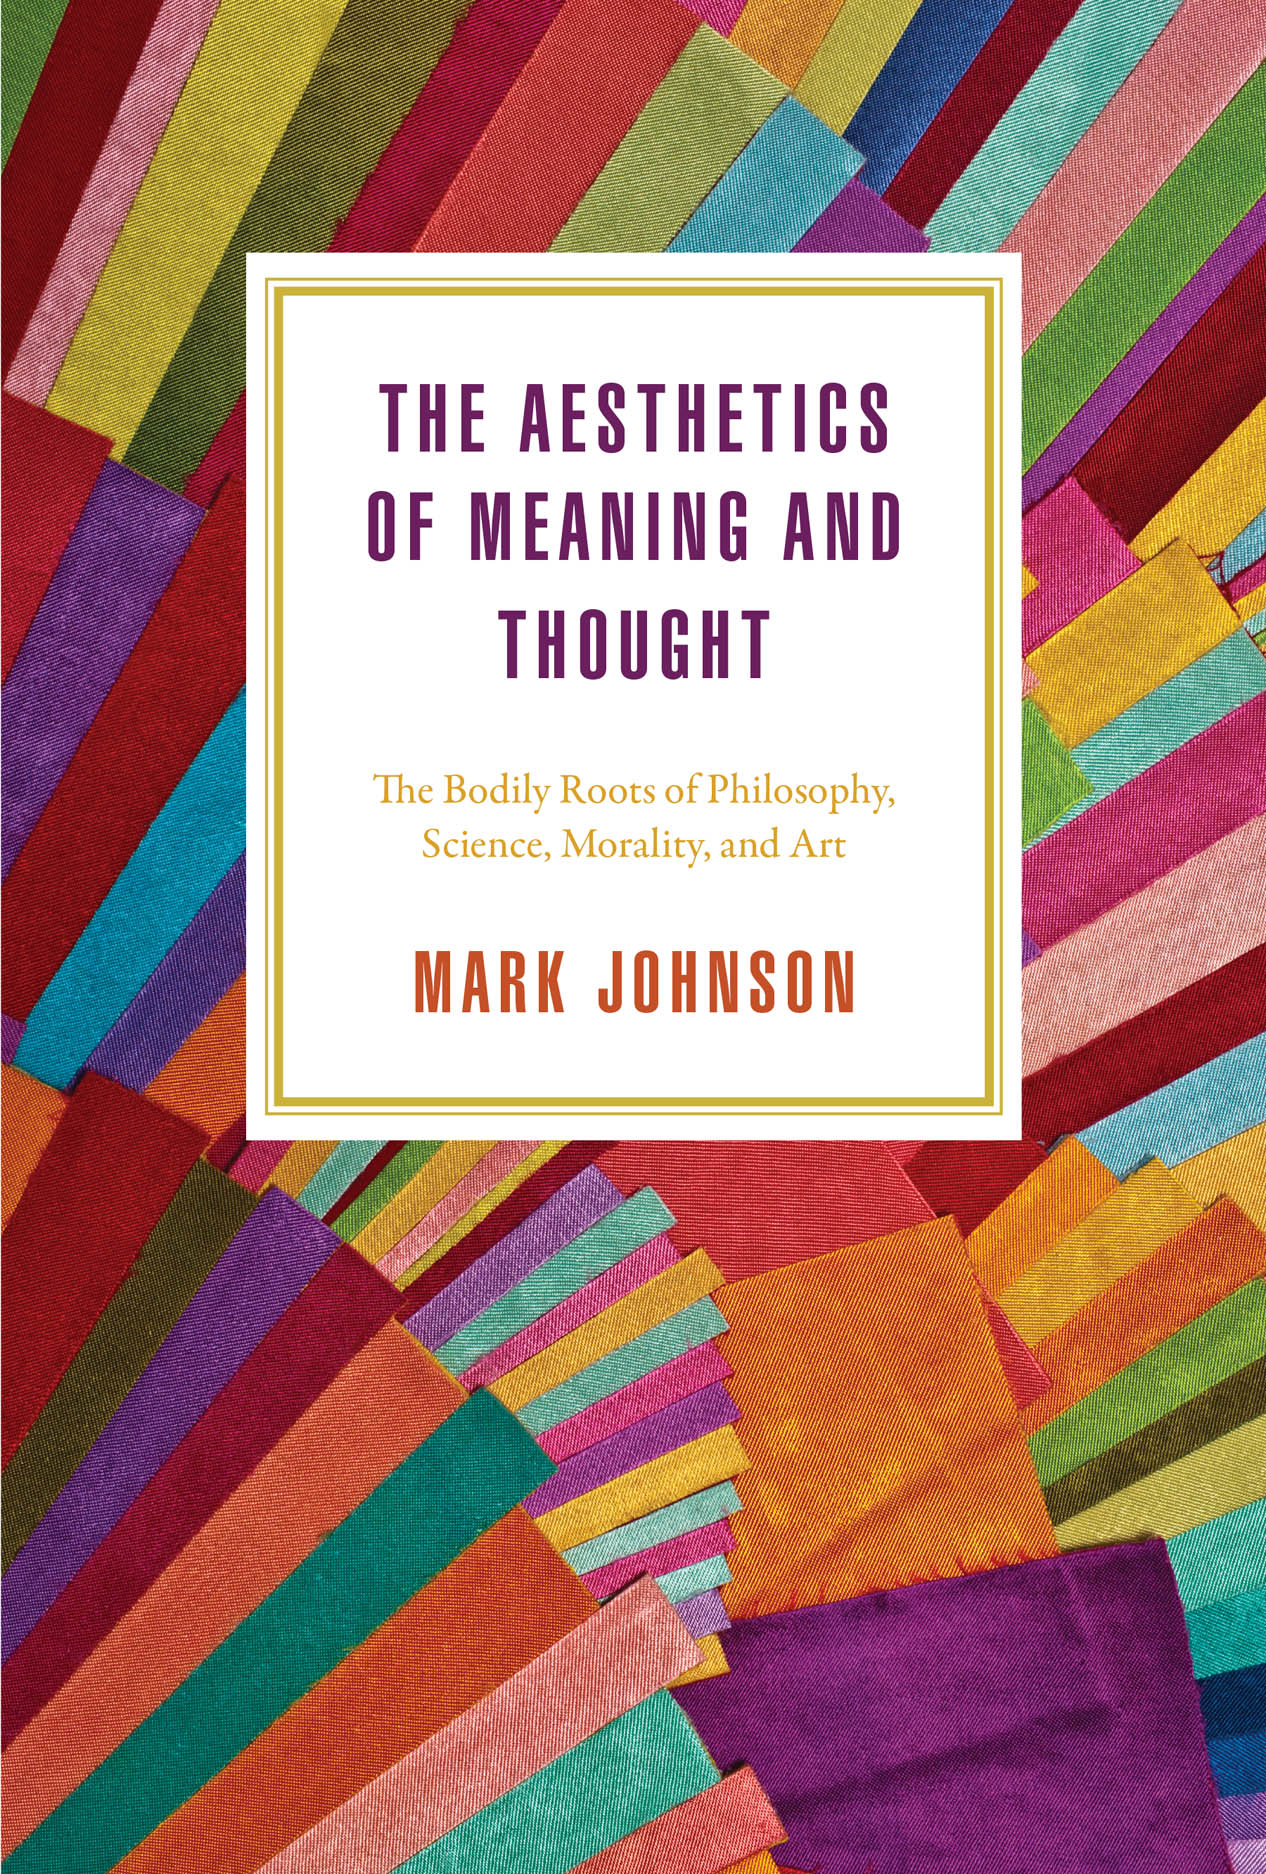 The Aesthetics of Meaning and Thought: The Bodily Roots of Philosophy, Science, Morality, and Art